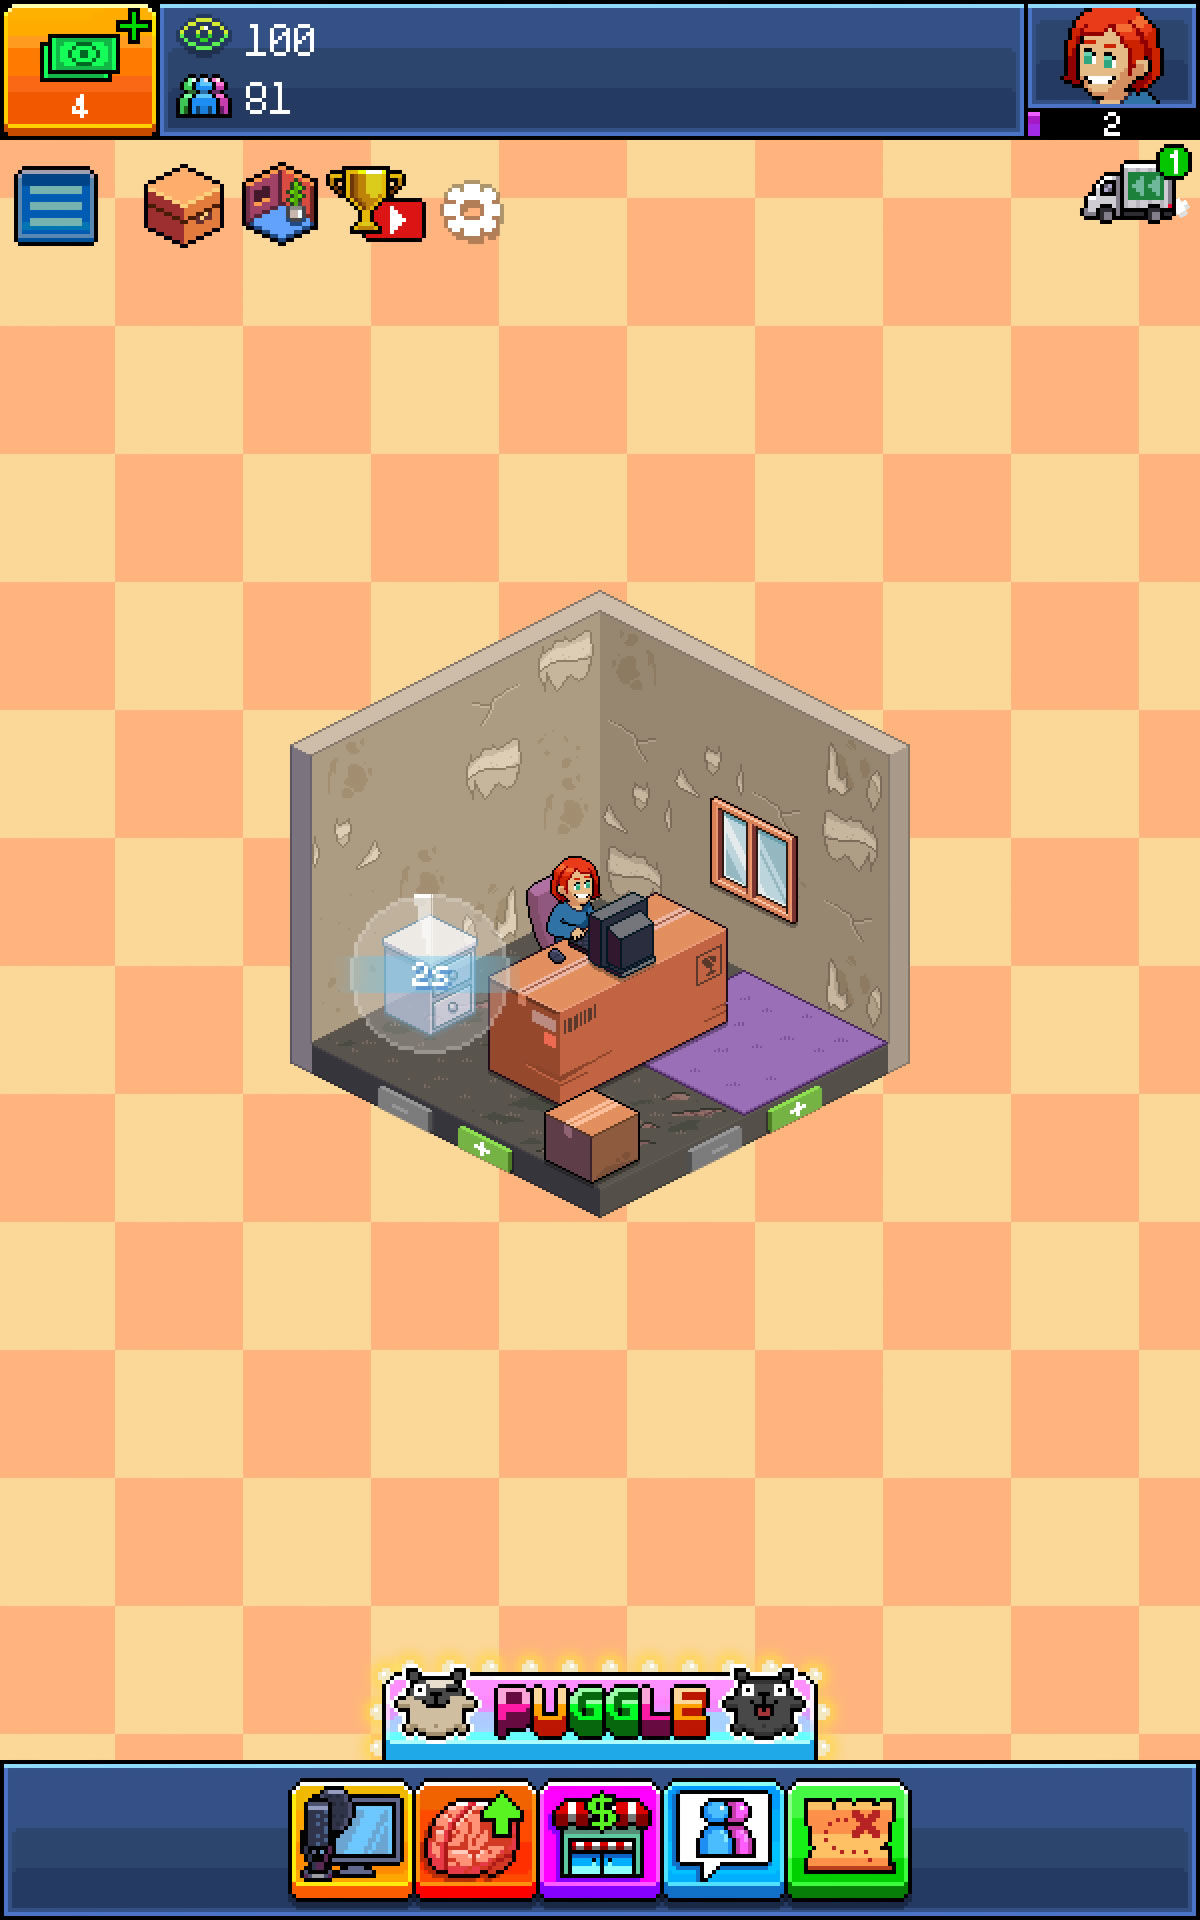 pewdiepie s tuber simulator screenshots for android mobygames